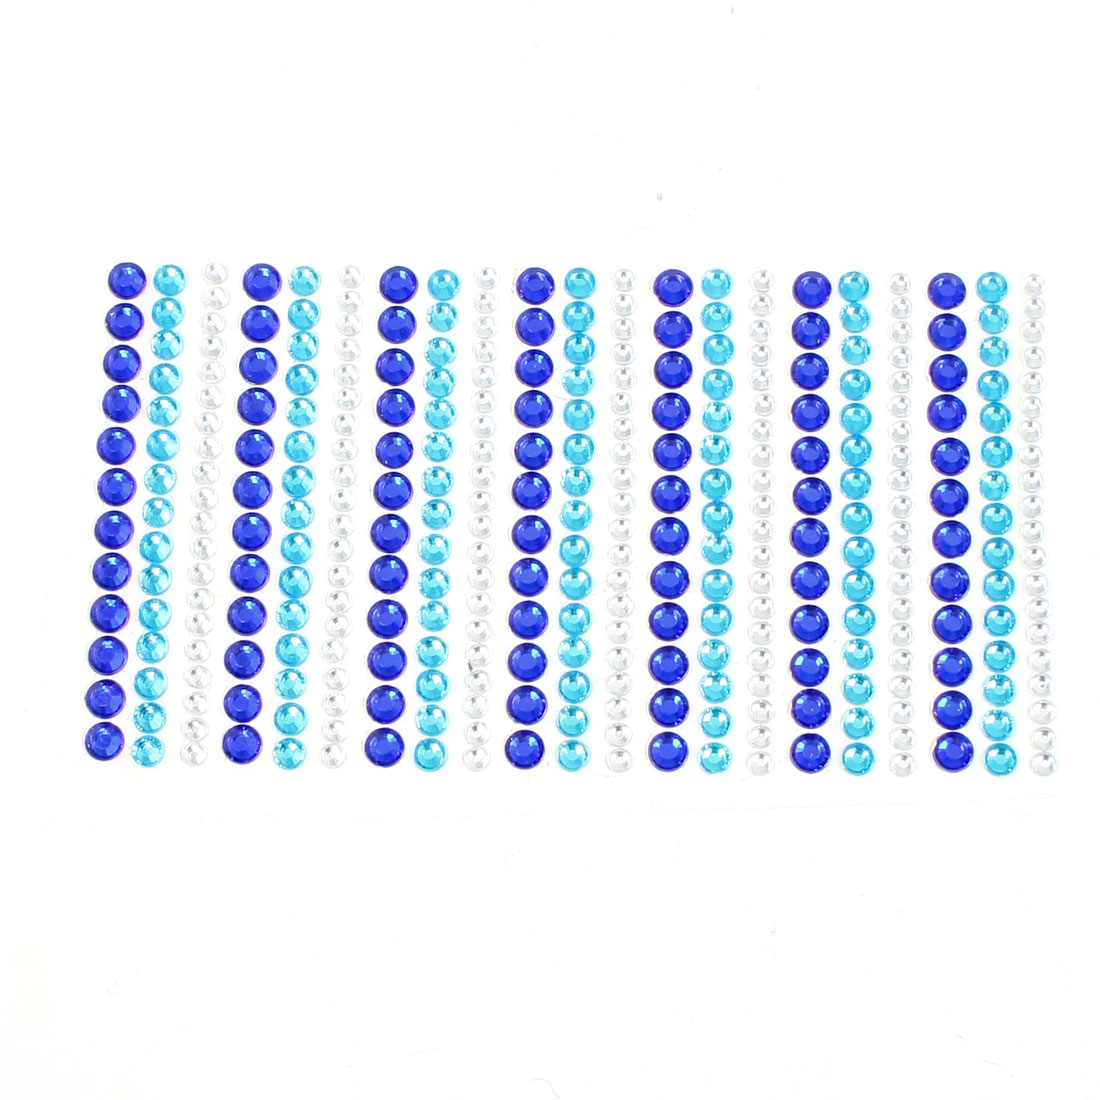 Car Vehicles Glitter Silver Tone Blue Cyan Plastic Rhinestone Decal Sticker Sheet